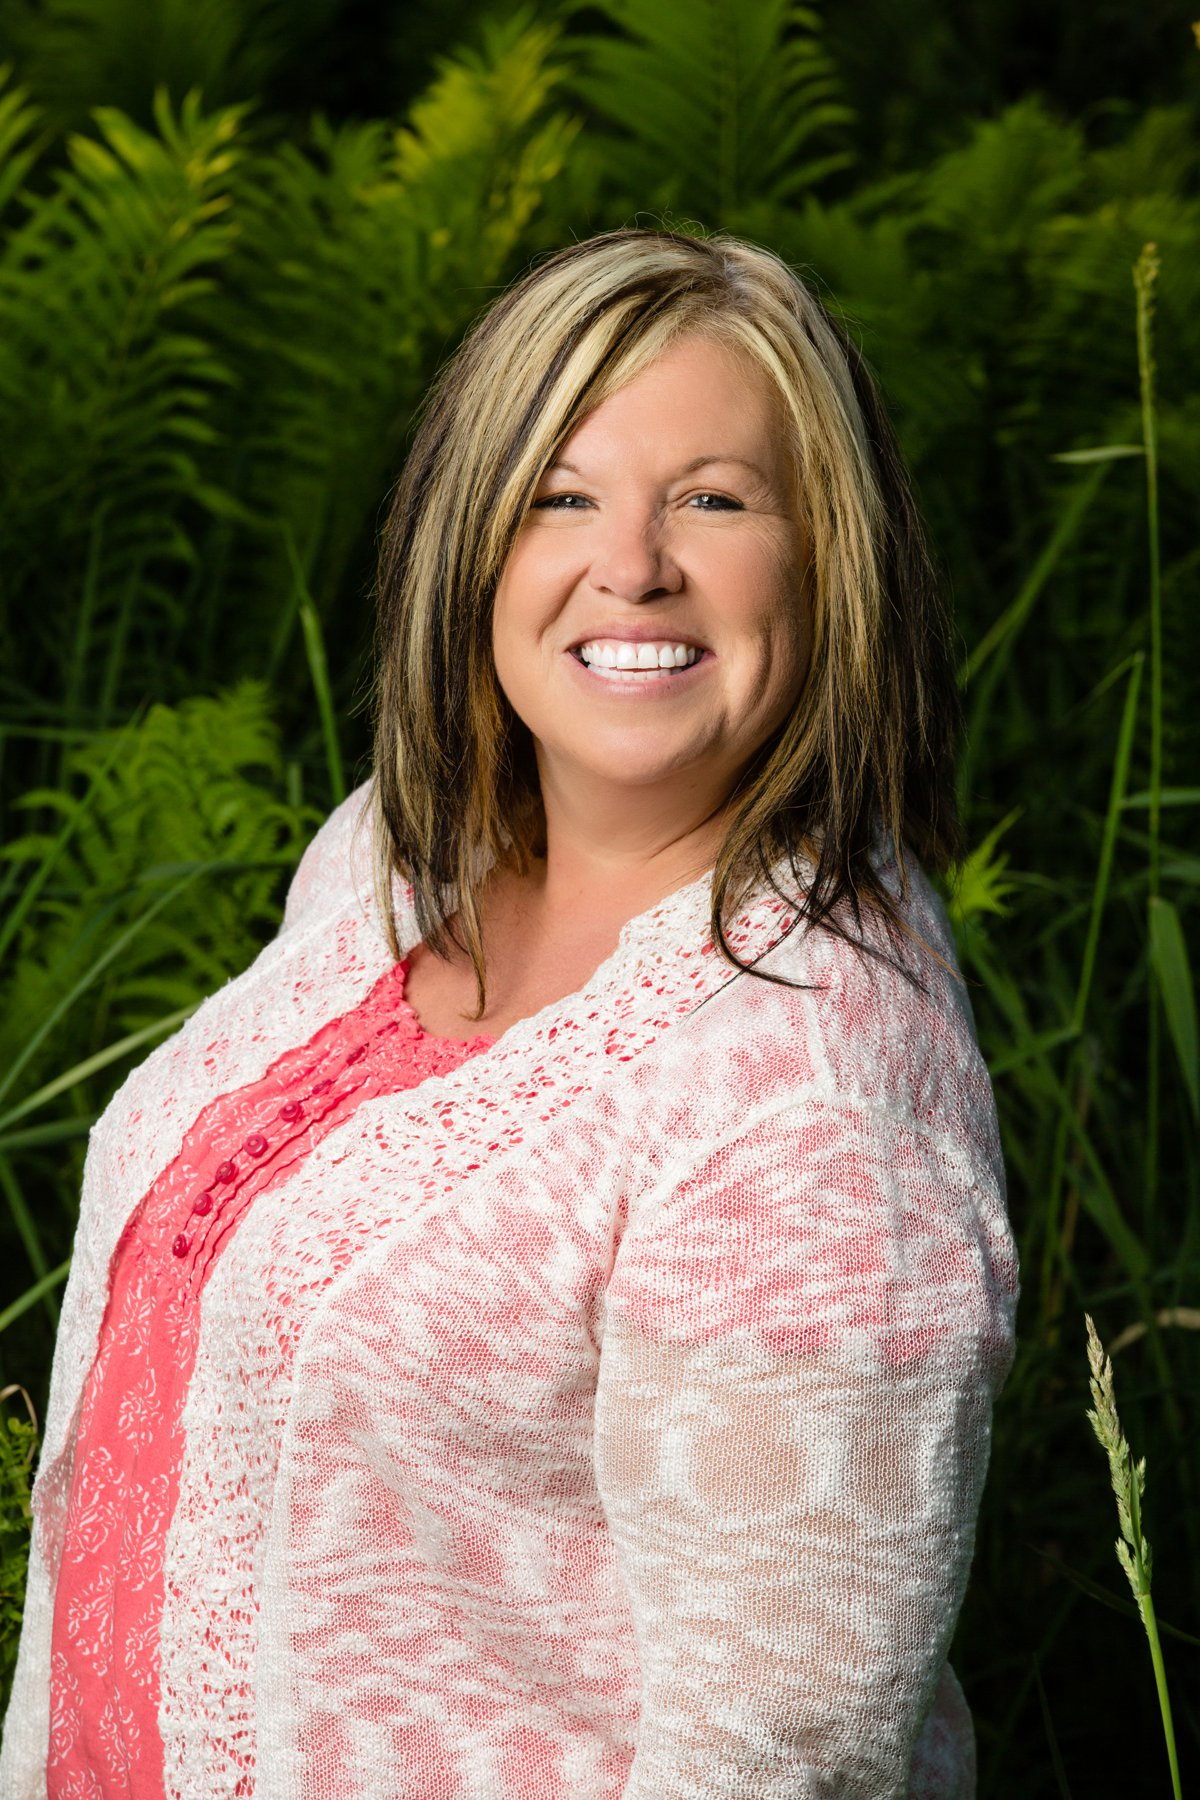 06-utopia-day-spa-commercial-portraits-photographer-medford-wi